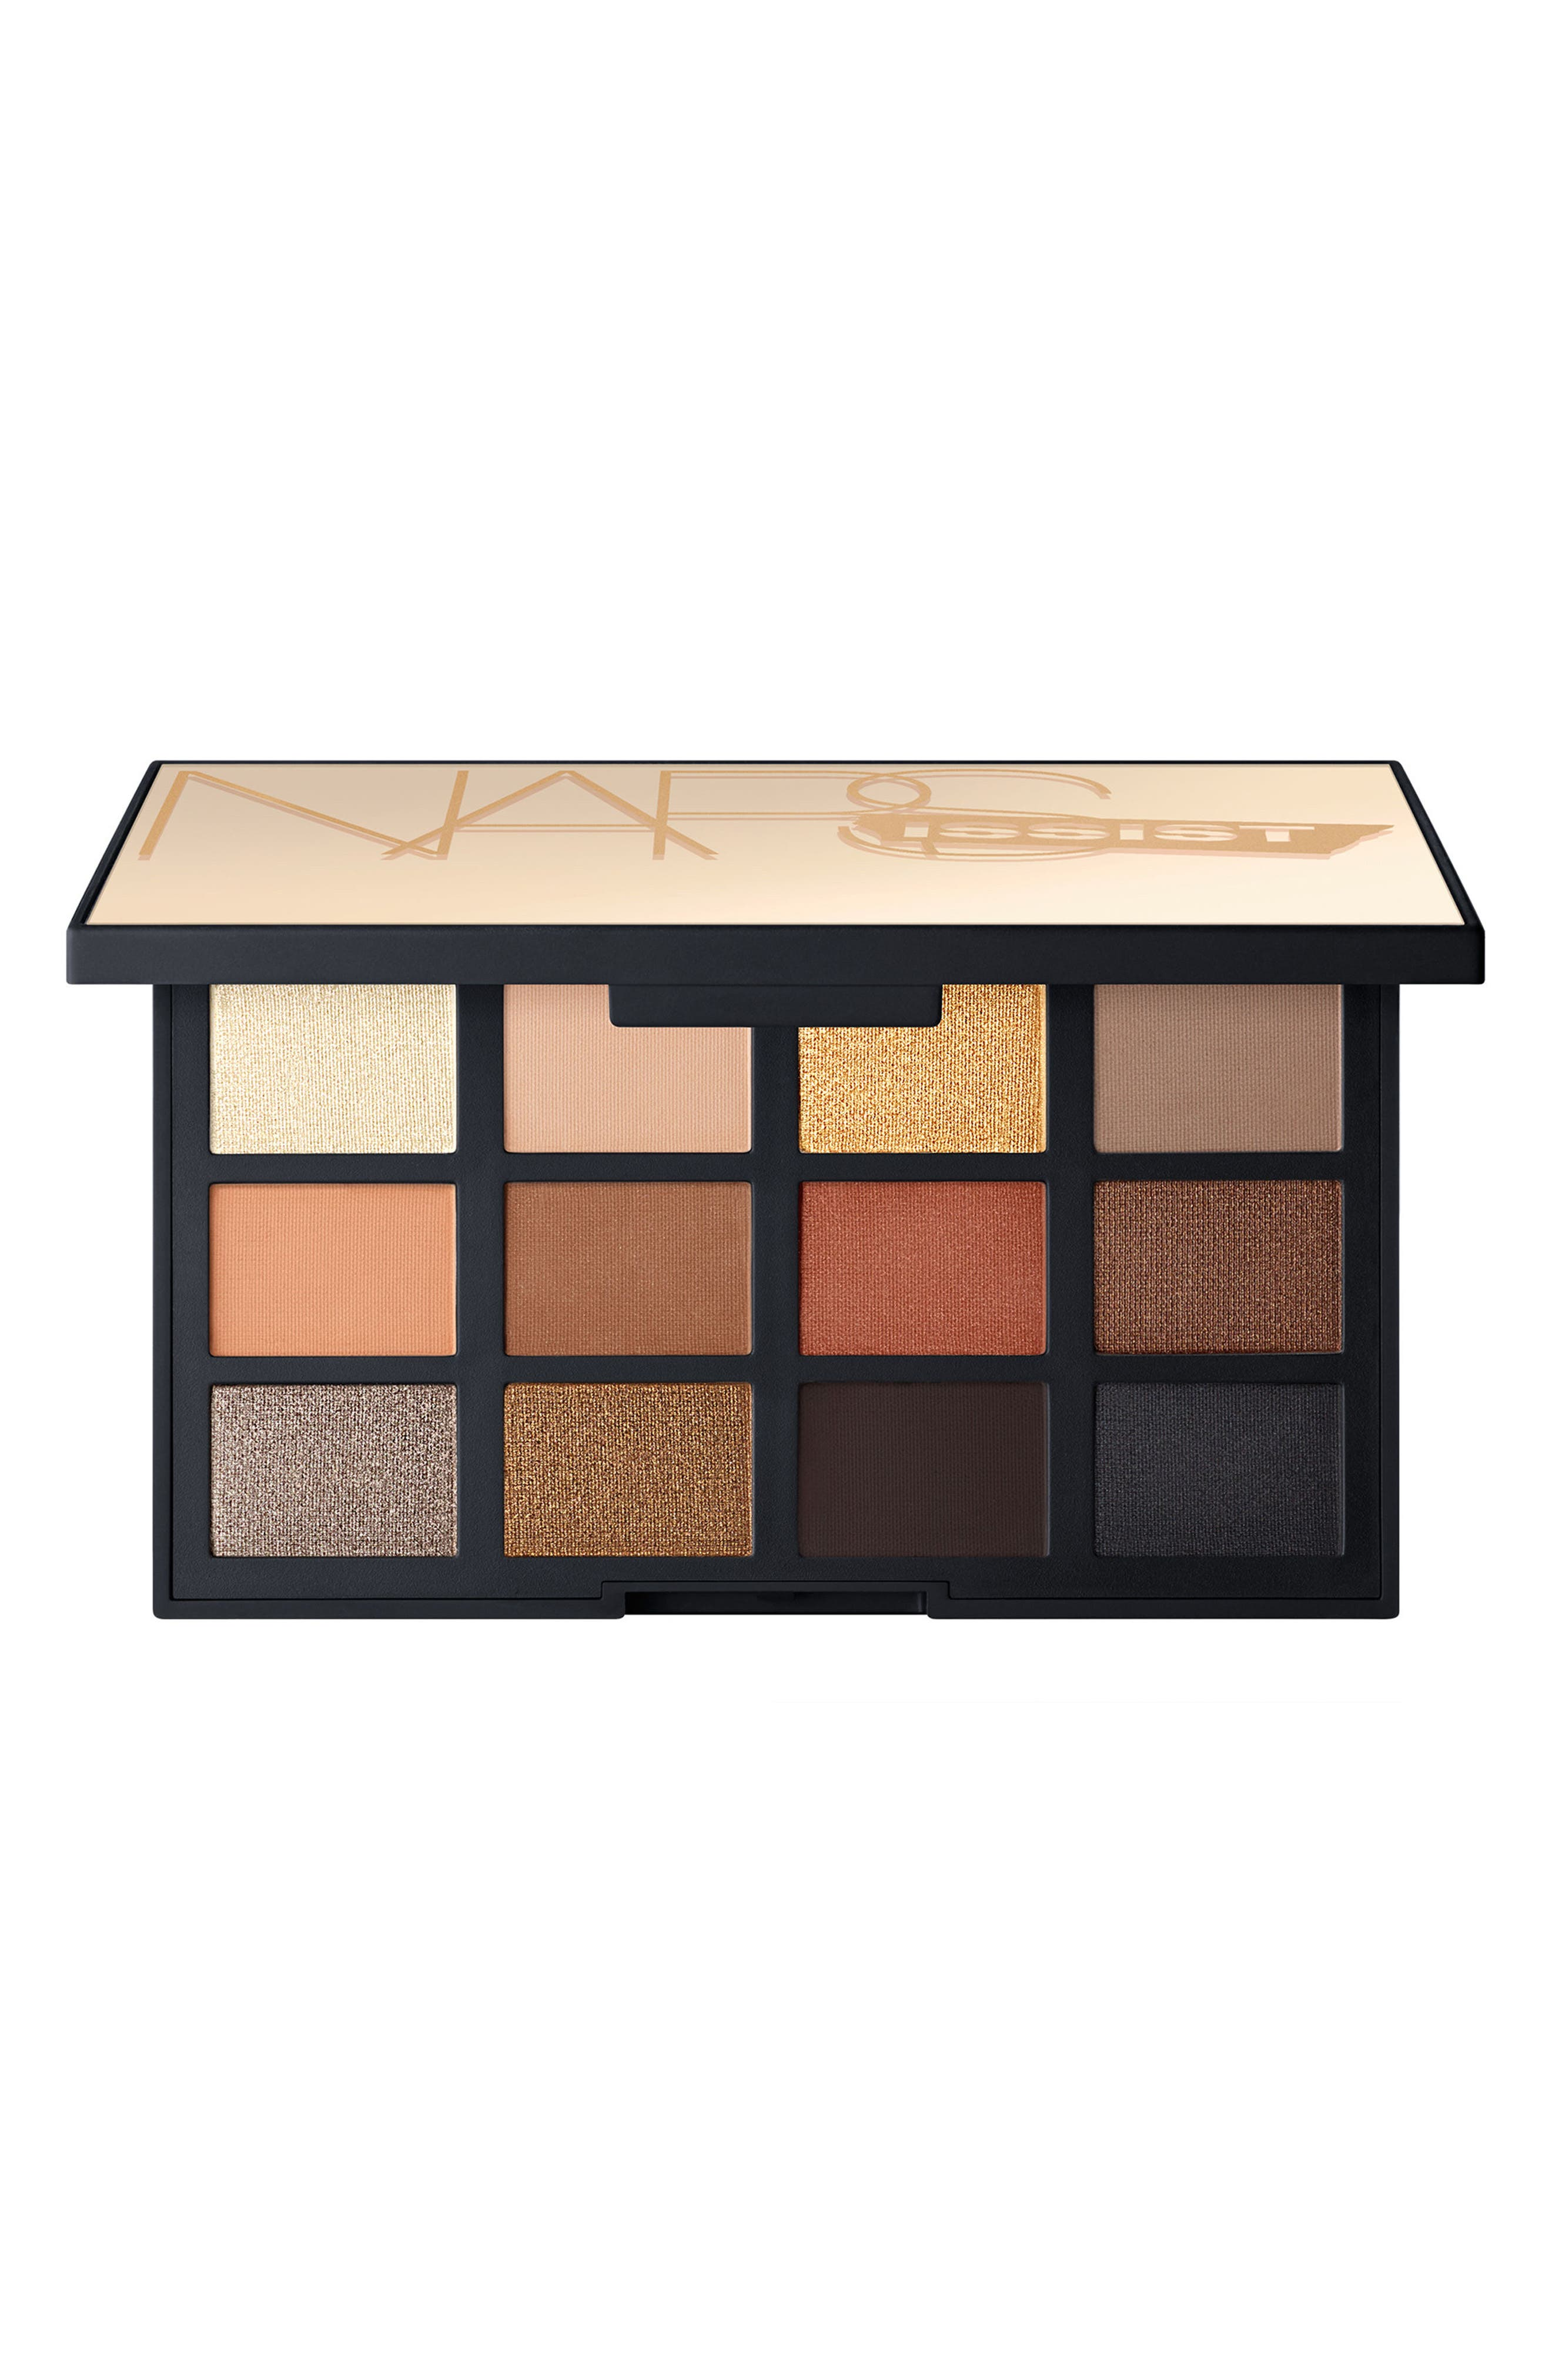 NARSissist Loaded Eyeshadow Palette,                             Main thumbnail 1, color,                             200